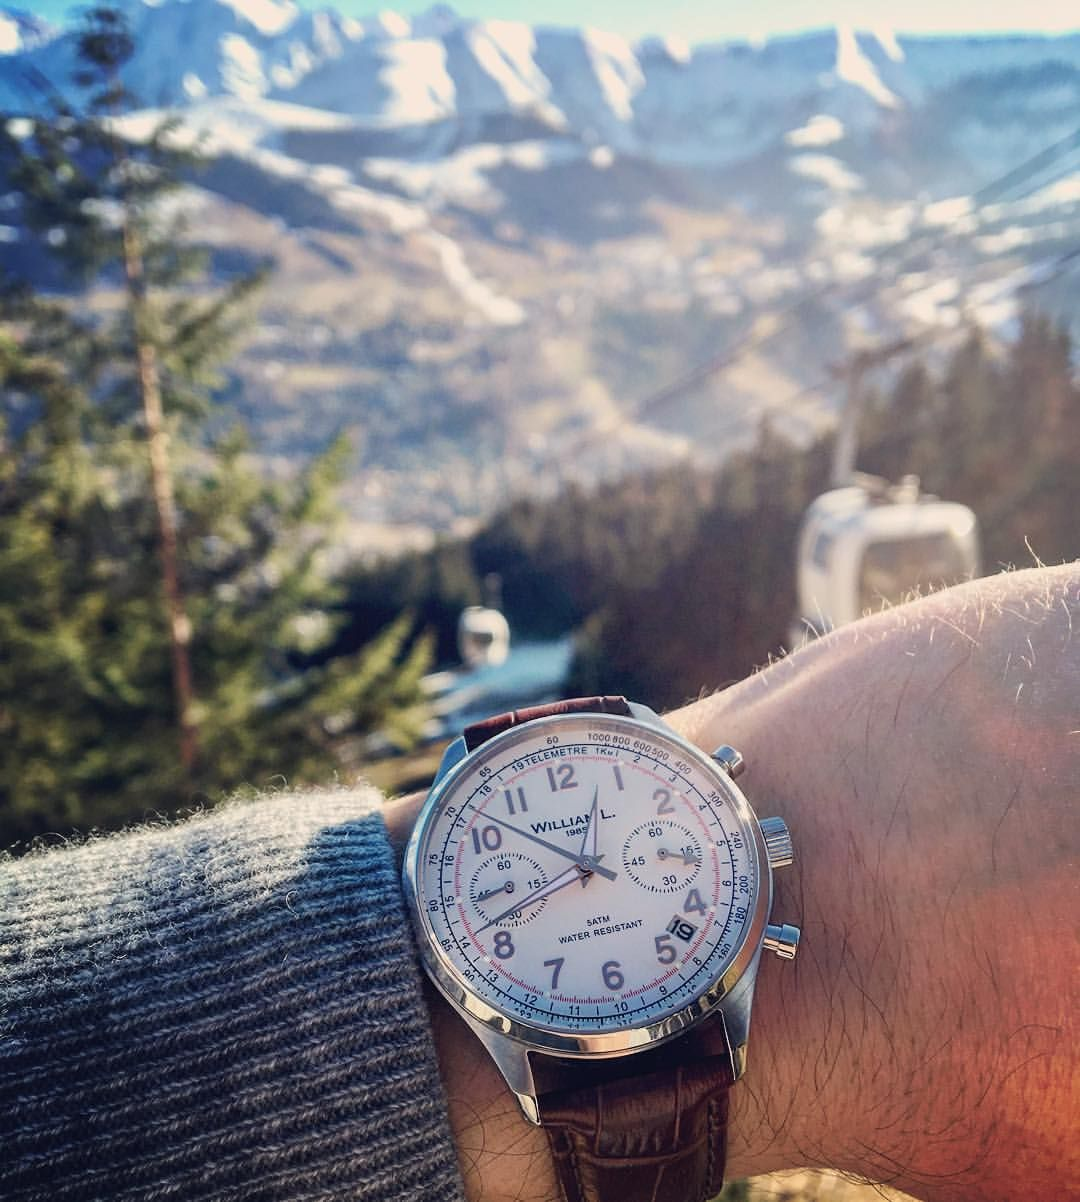 WILLIAM L. 1985 sur Instagram: Not a lot of snow in Megève today but a #WilliamL1985 #Vintage Style #Chronograph on the wrist  #watches #instadaily #watchanish #hodinkee